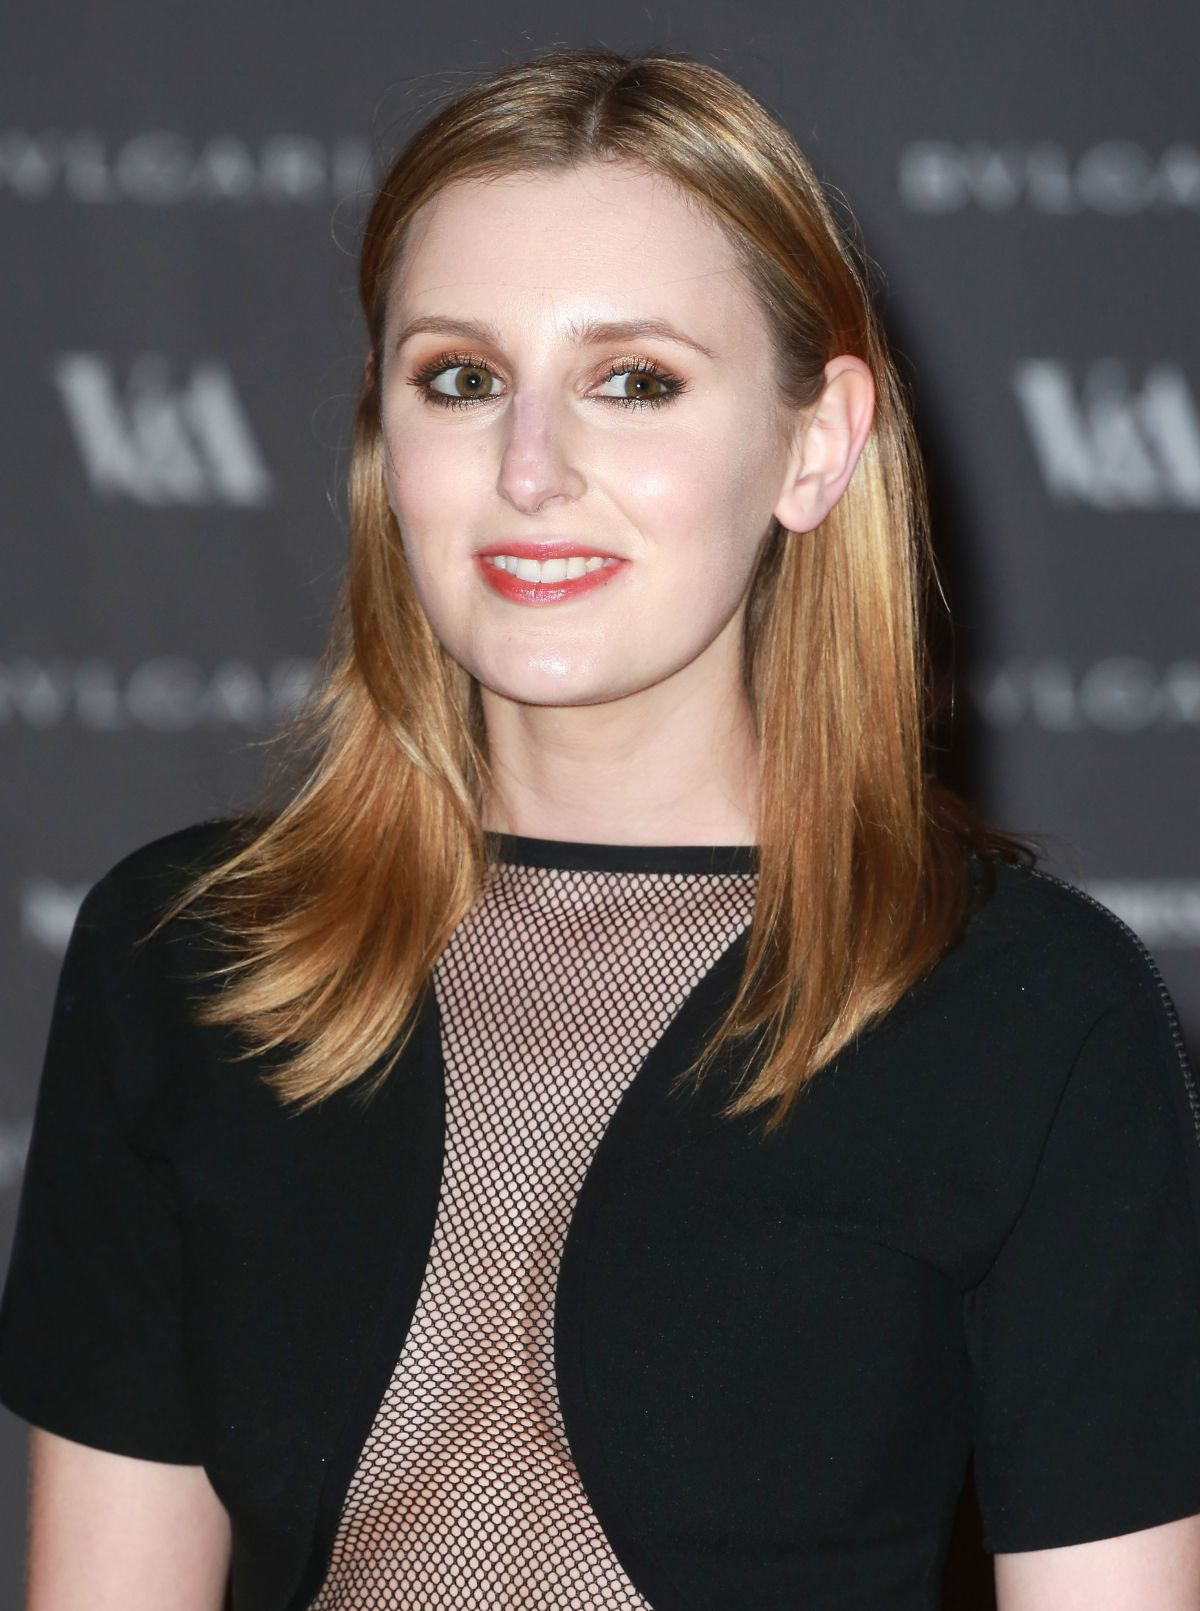 The 31-year old daughter of father Andy Carmichael and mother Sarah Carmichael, 170 cm tall Laura Carmichael in 2017 photo